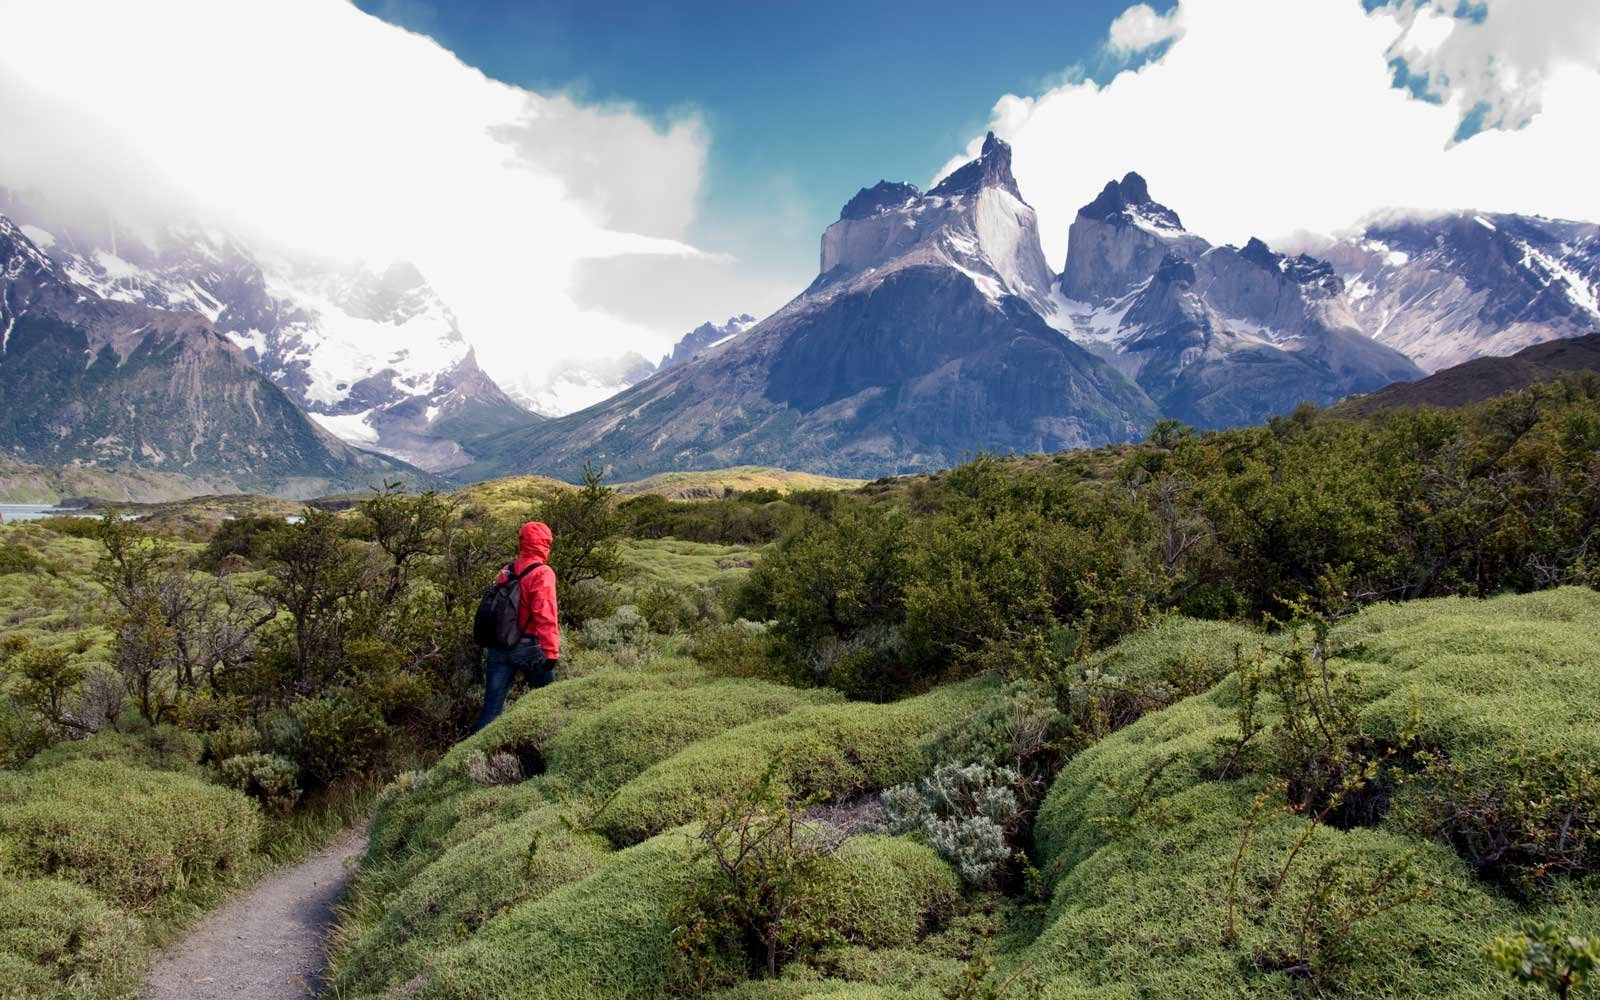 Chile Has a Massive New Hiking Trail That Spans a Third of the Country and Connects 17 National Parks